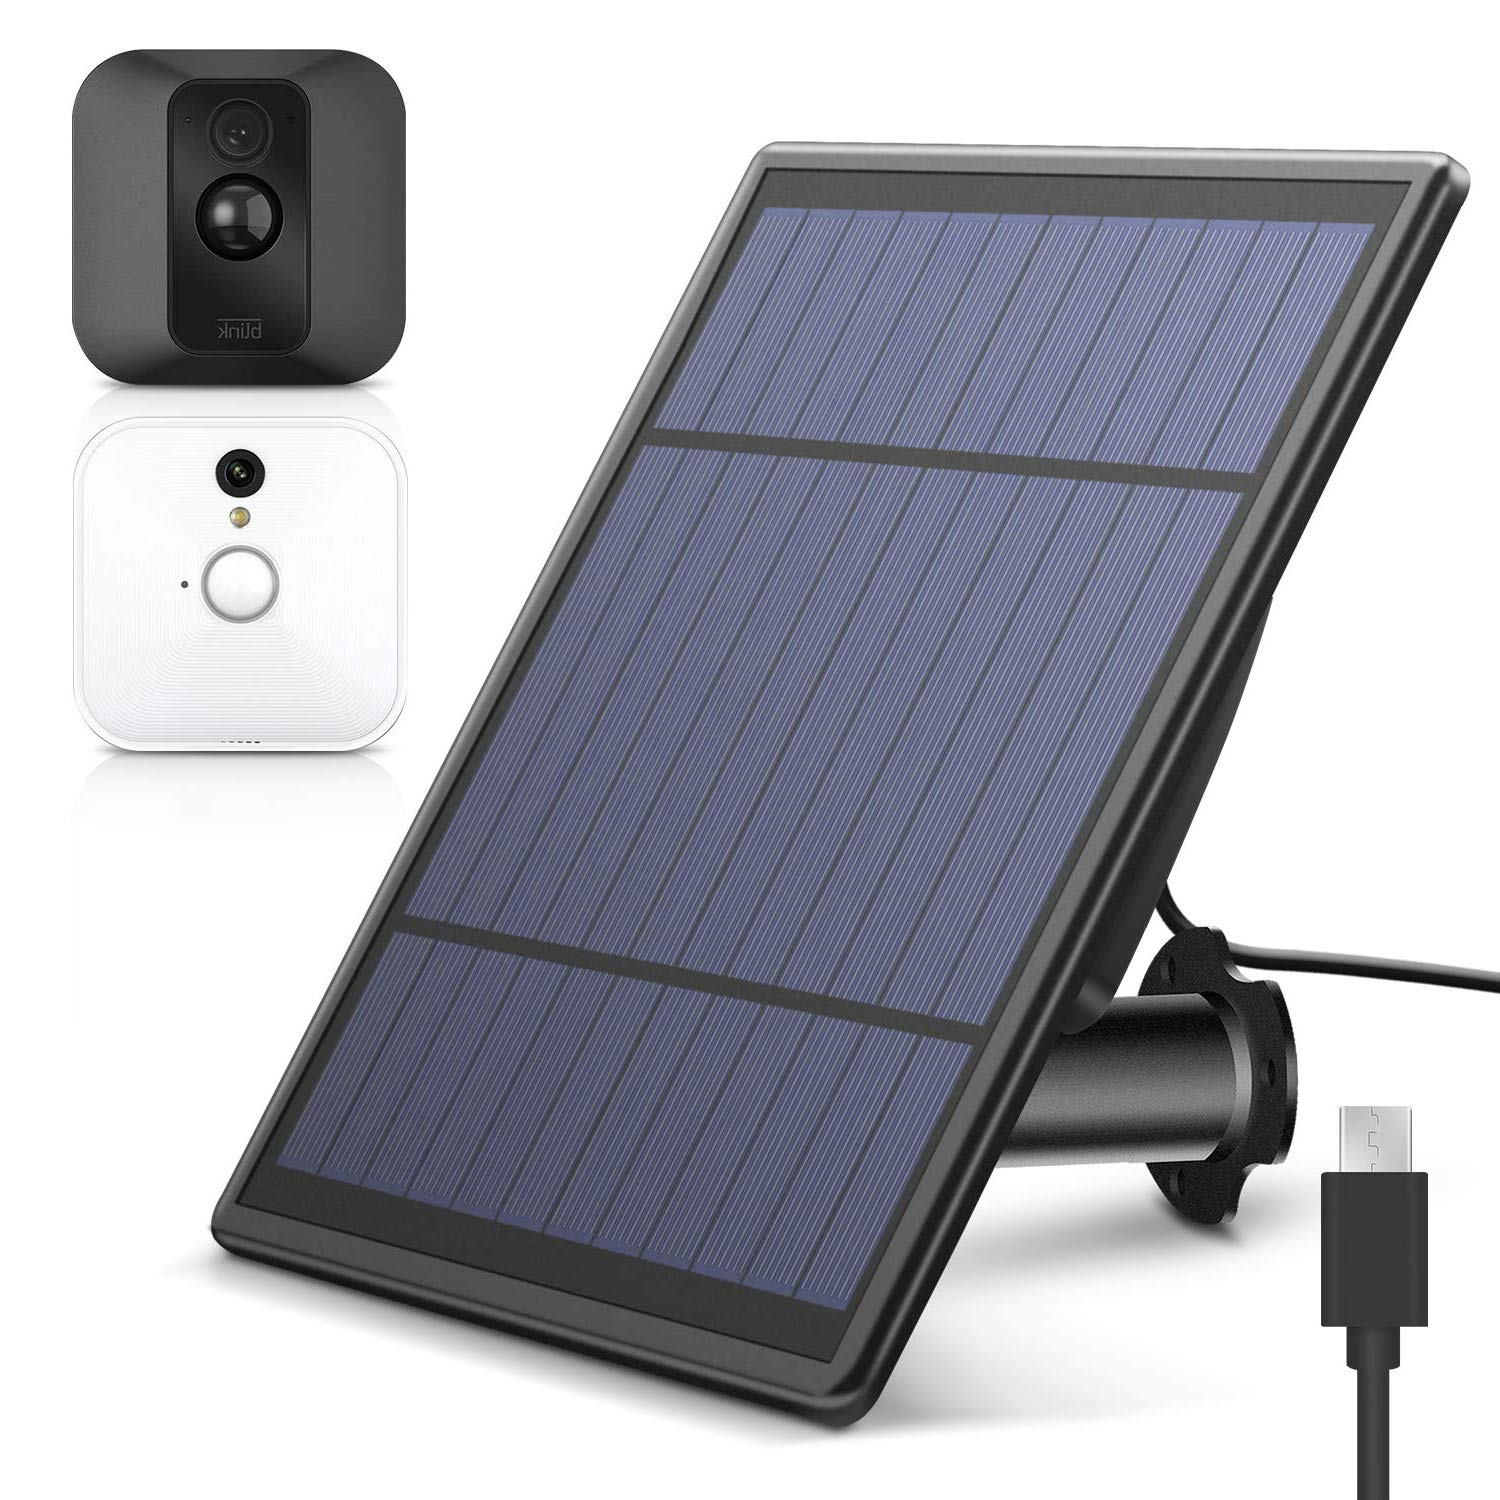 MASCARRY Solar Panel for Blink XT XT 2 Security Camera, Wall Mount Outdoor Weather Proof Solar Power Charging Panel for Blink XT XT 2 Home Security Camera System